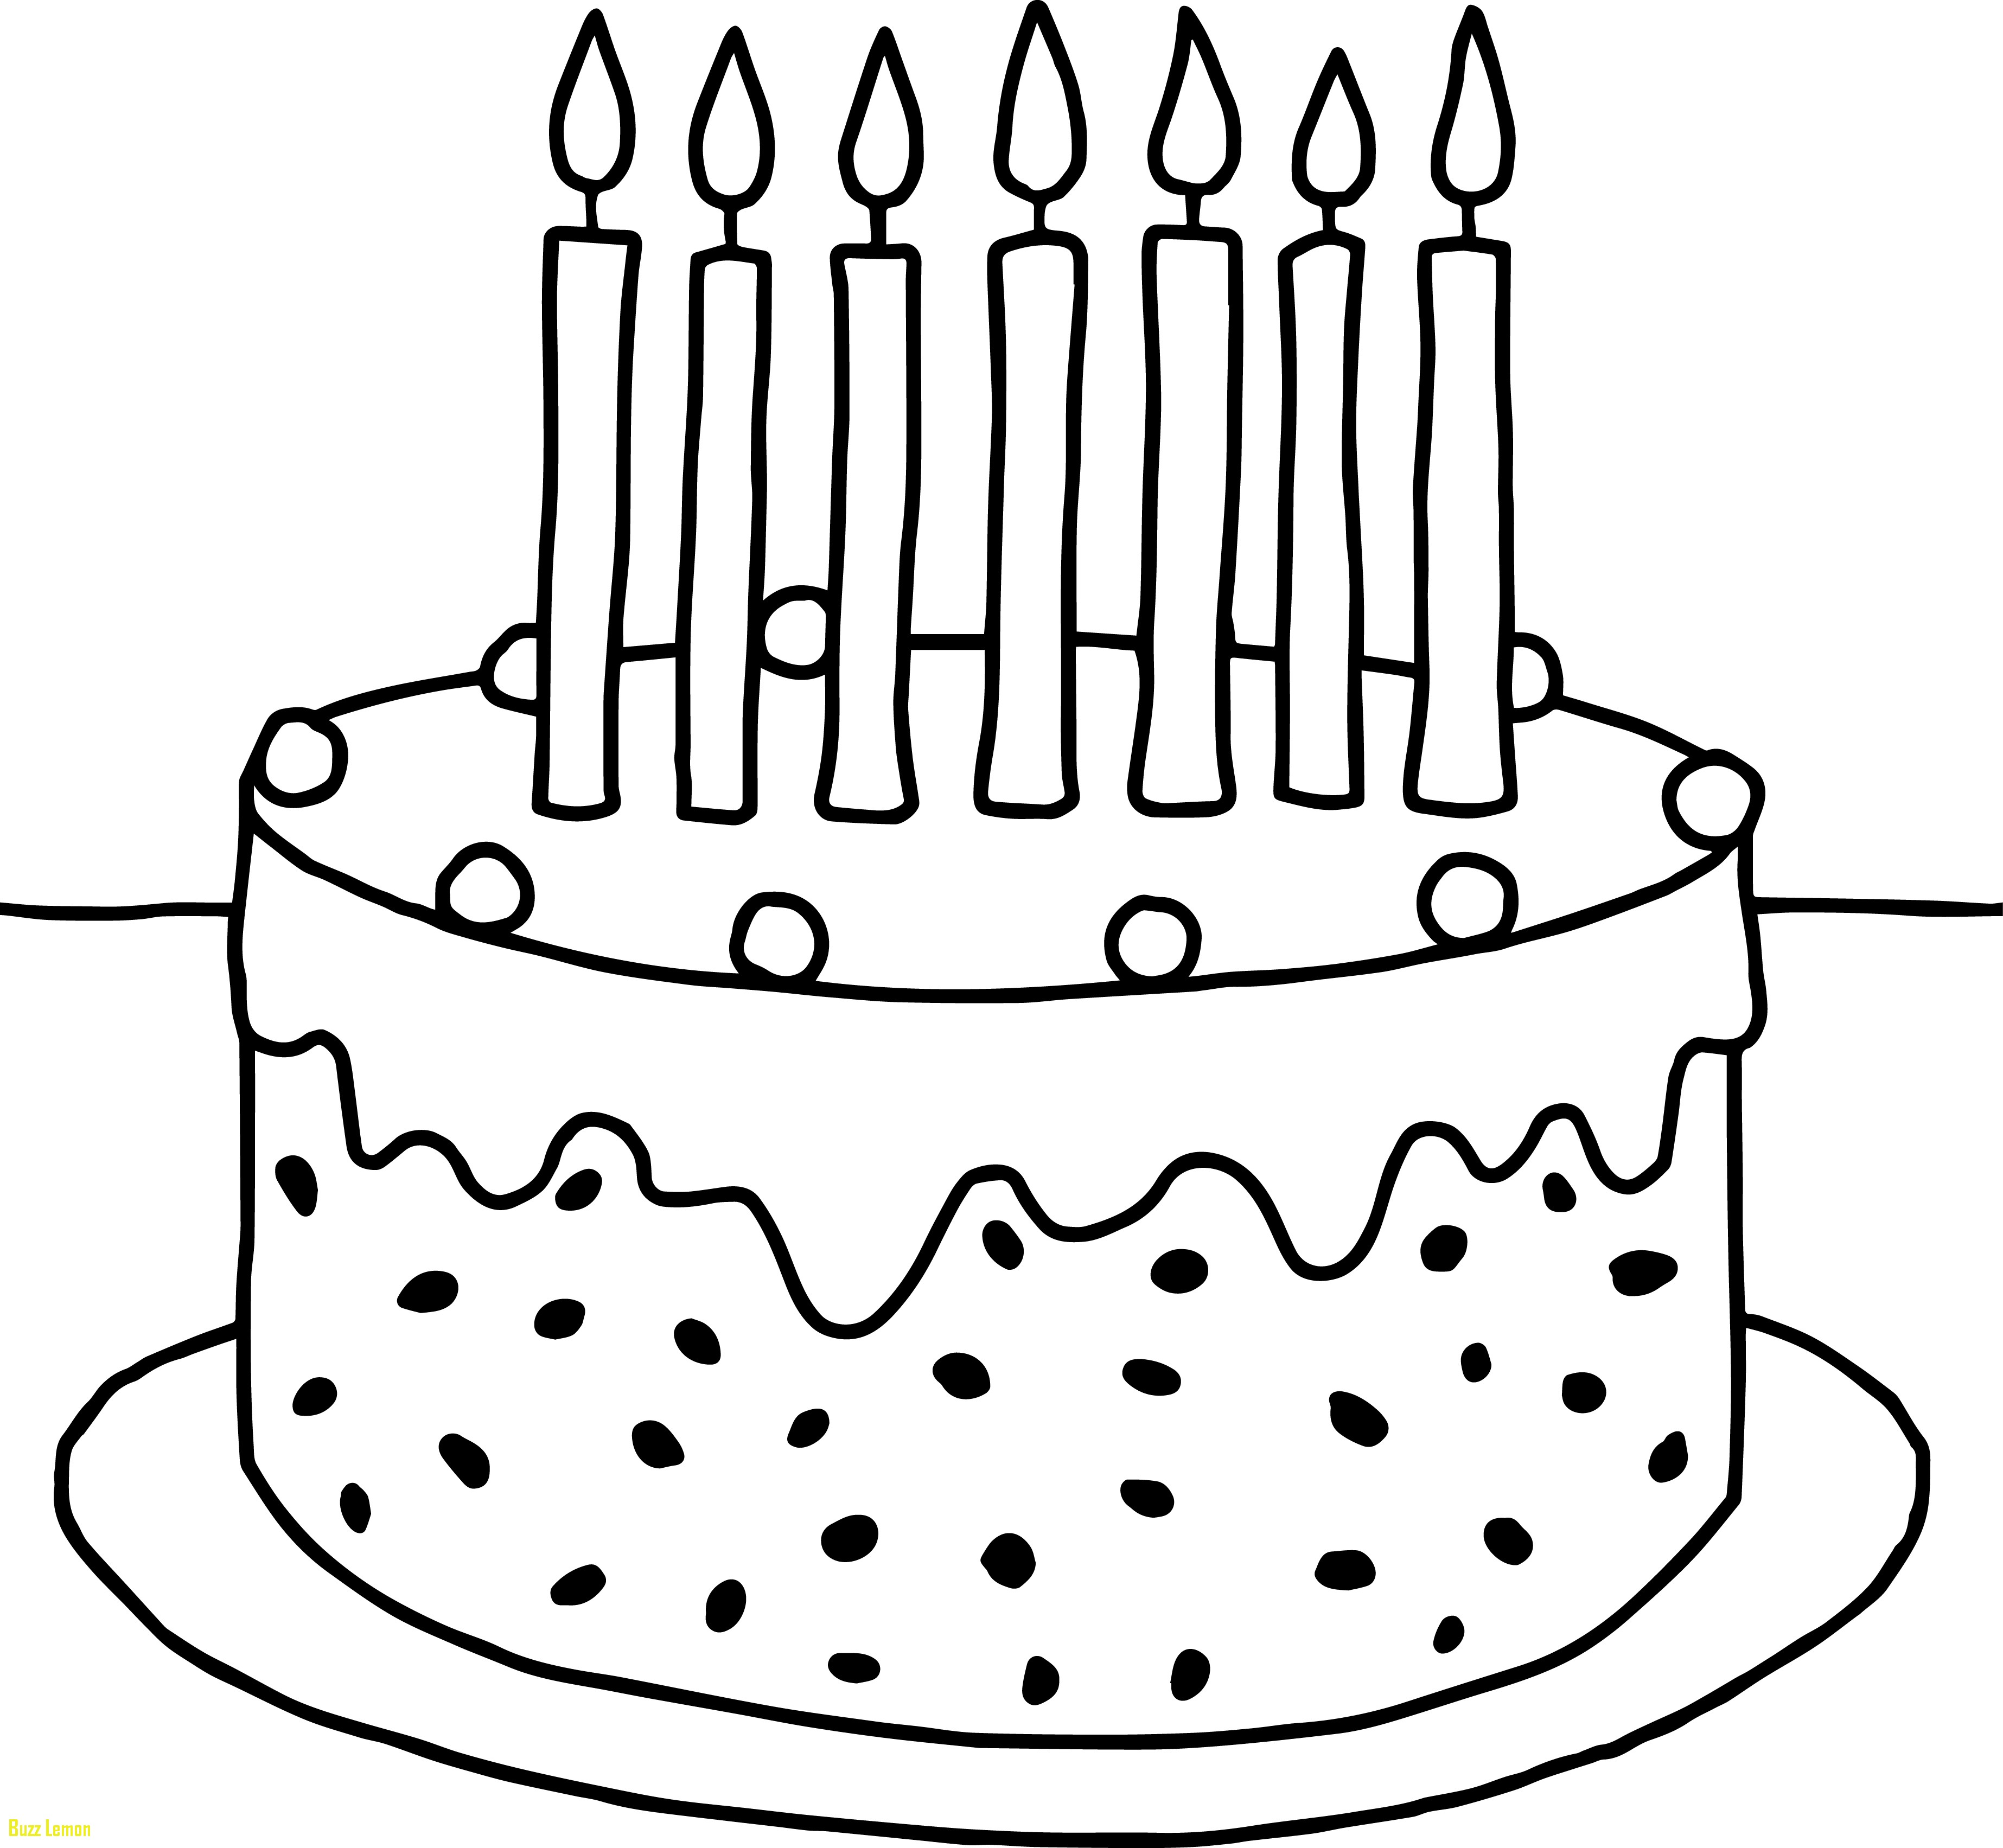 3692x3407 Preschool Coloring Pages Inspirational Birthday Cake Coloring